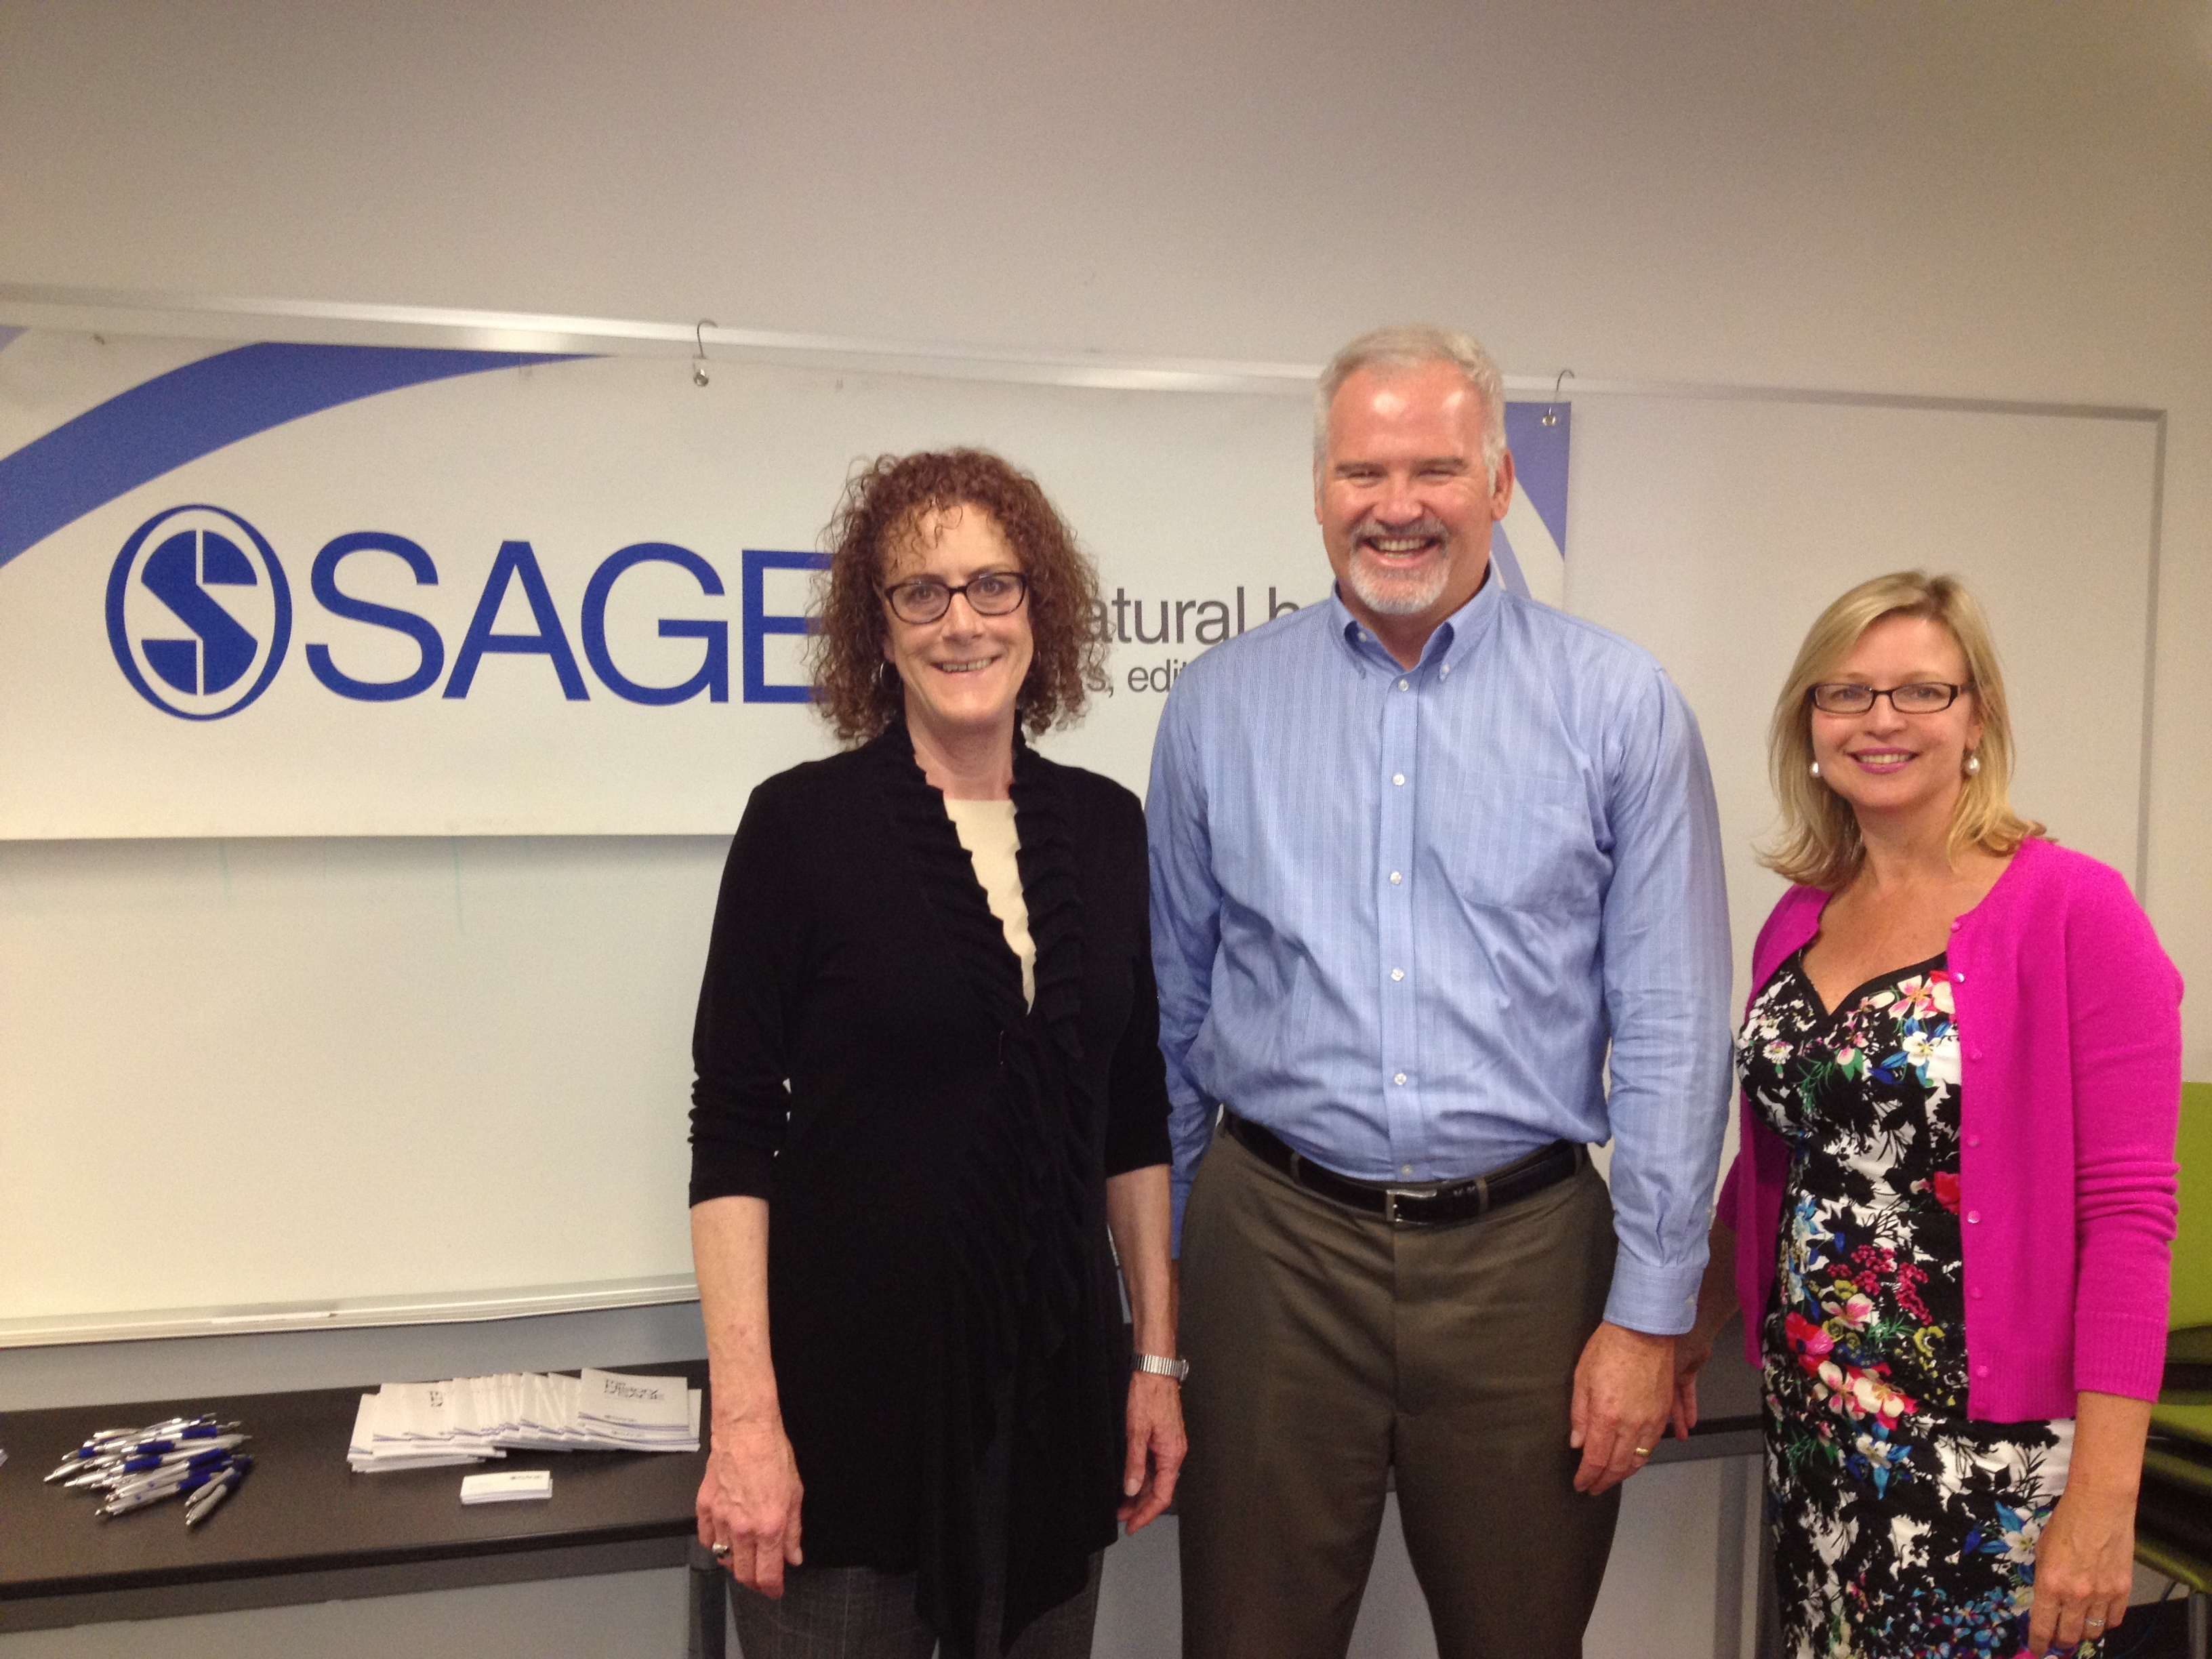 Karen T. Carey, Associate Vice President for Arts and Sciences, CSU Channel Islands, Jim Gilden, and Diane McDaniel